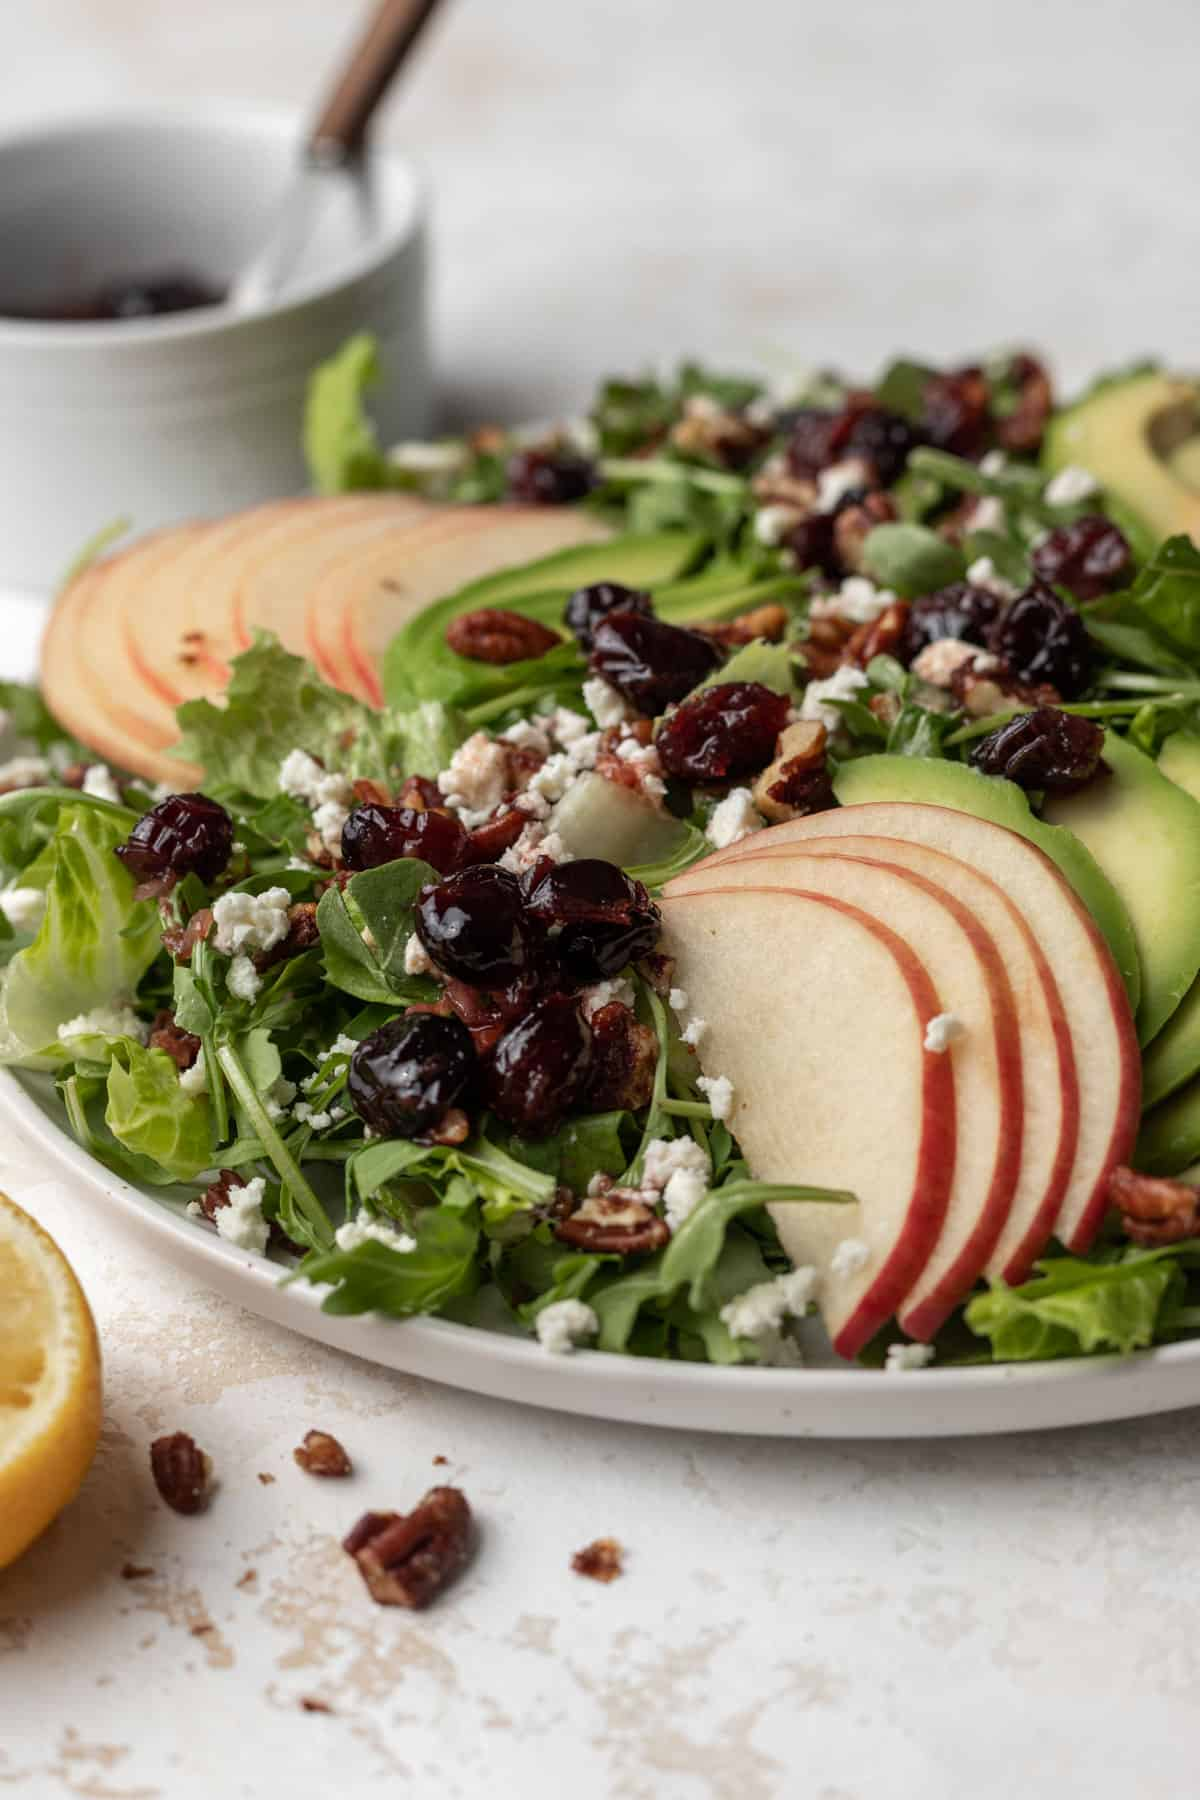 A side view of sliced apples on top of avocado and arugula salad topped with cranberry vinaigrette, toasted pecans, and feta.